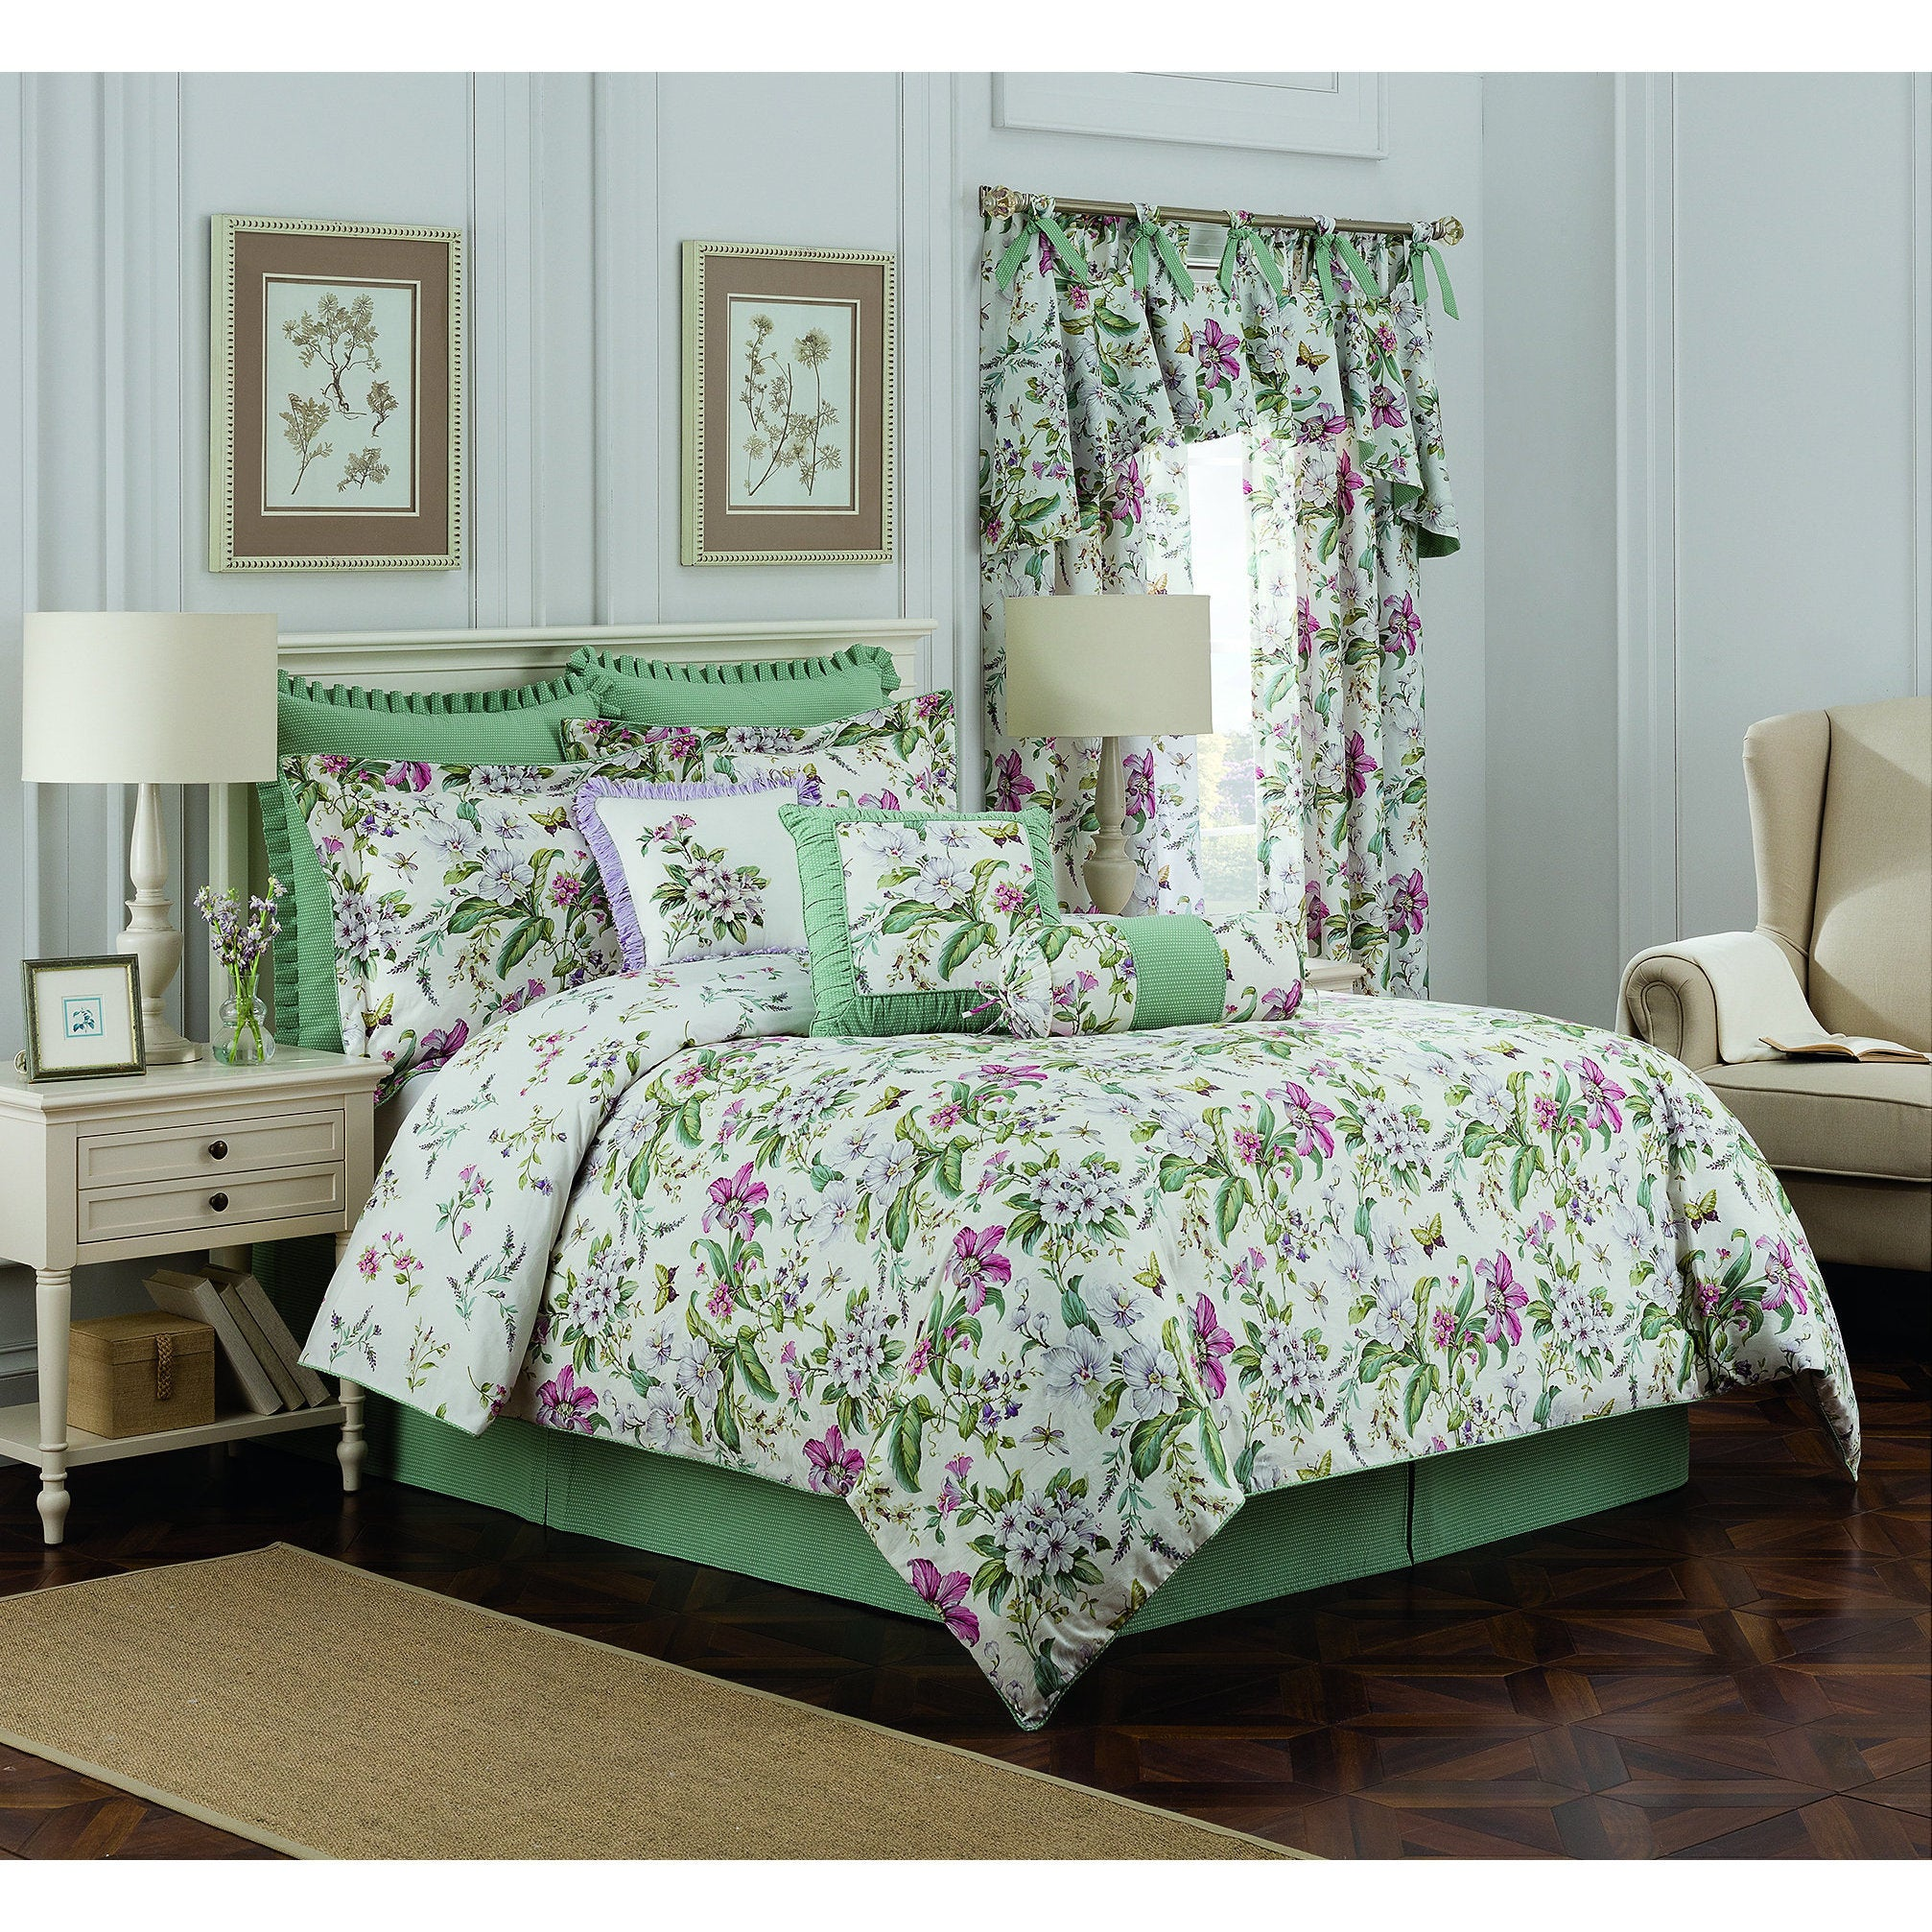 Royal Heritage Home Williamsburg Palace Green 4-Piece Ful...